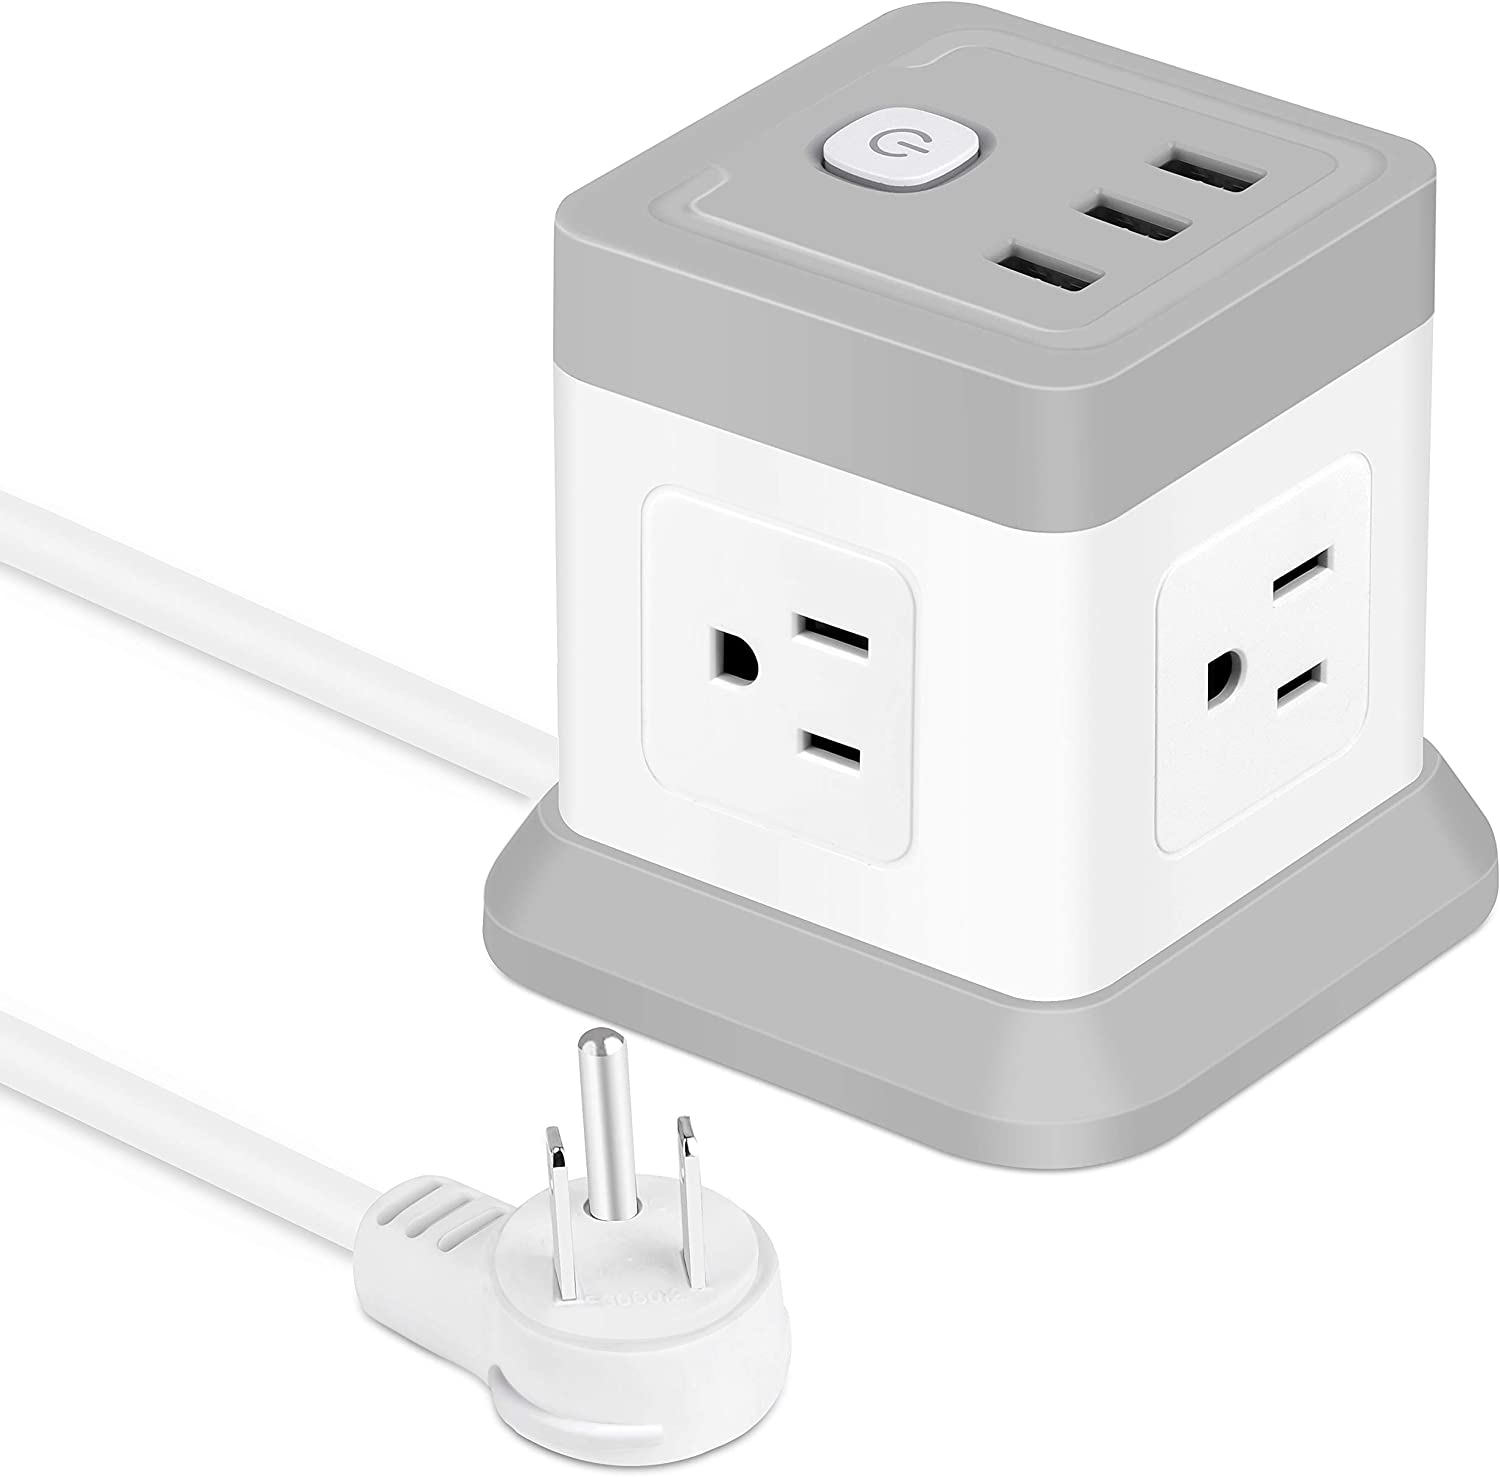 Power Strip with 4 Outlets 3 USB Ports, BEVA Cube Extension Cord Flat Plug Small Desktop Charging Station with 5ft Power Cable Multi Protection for Travel, Cruise Ship, Office, Dorm Room